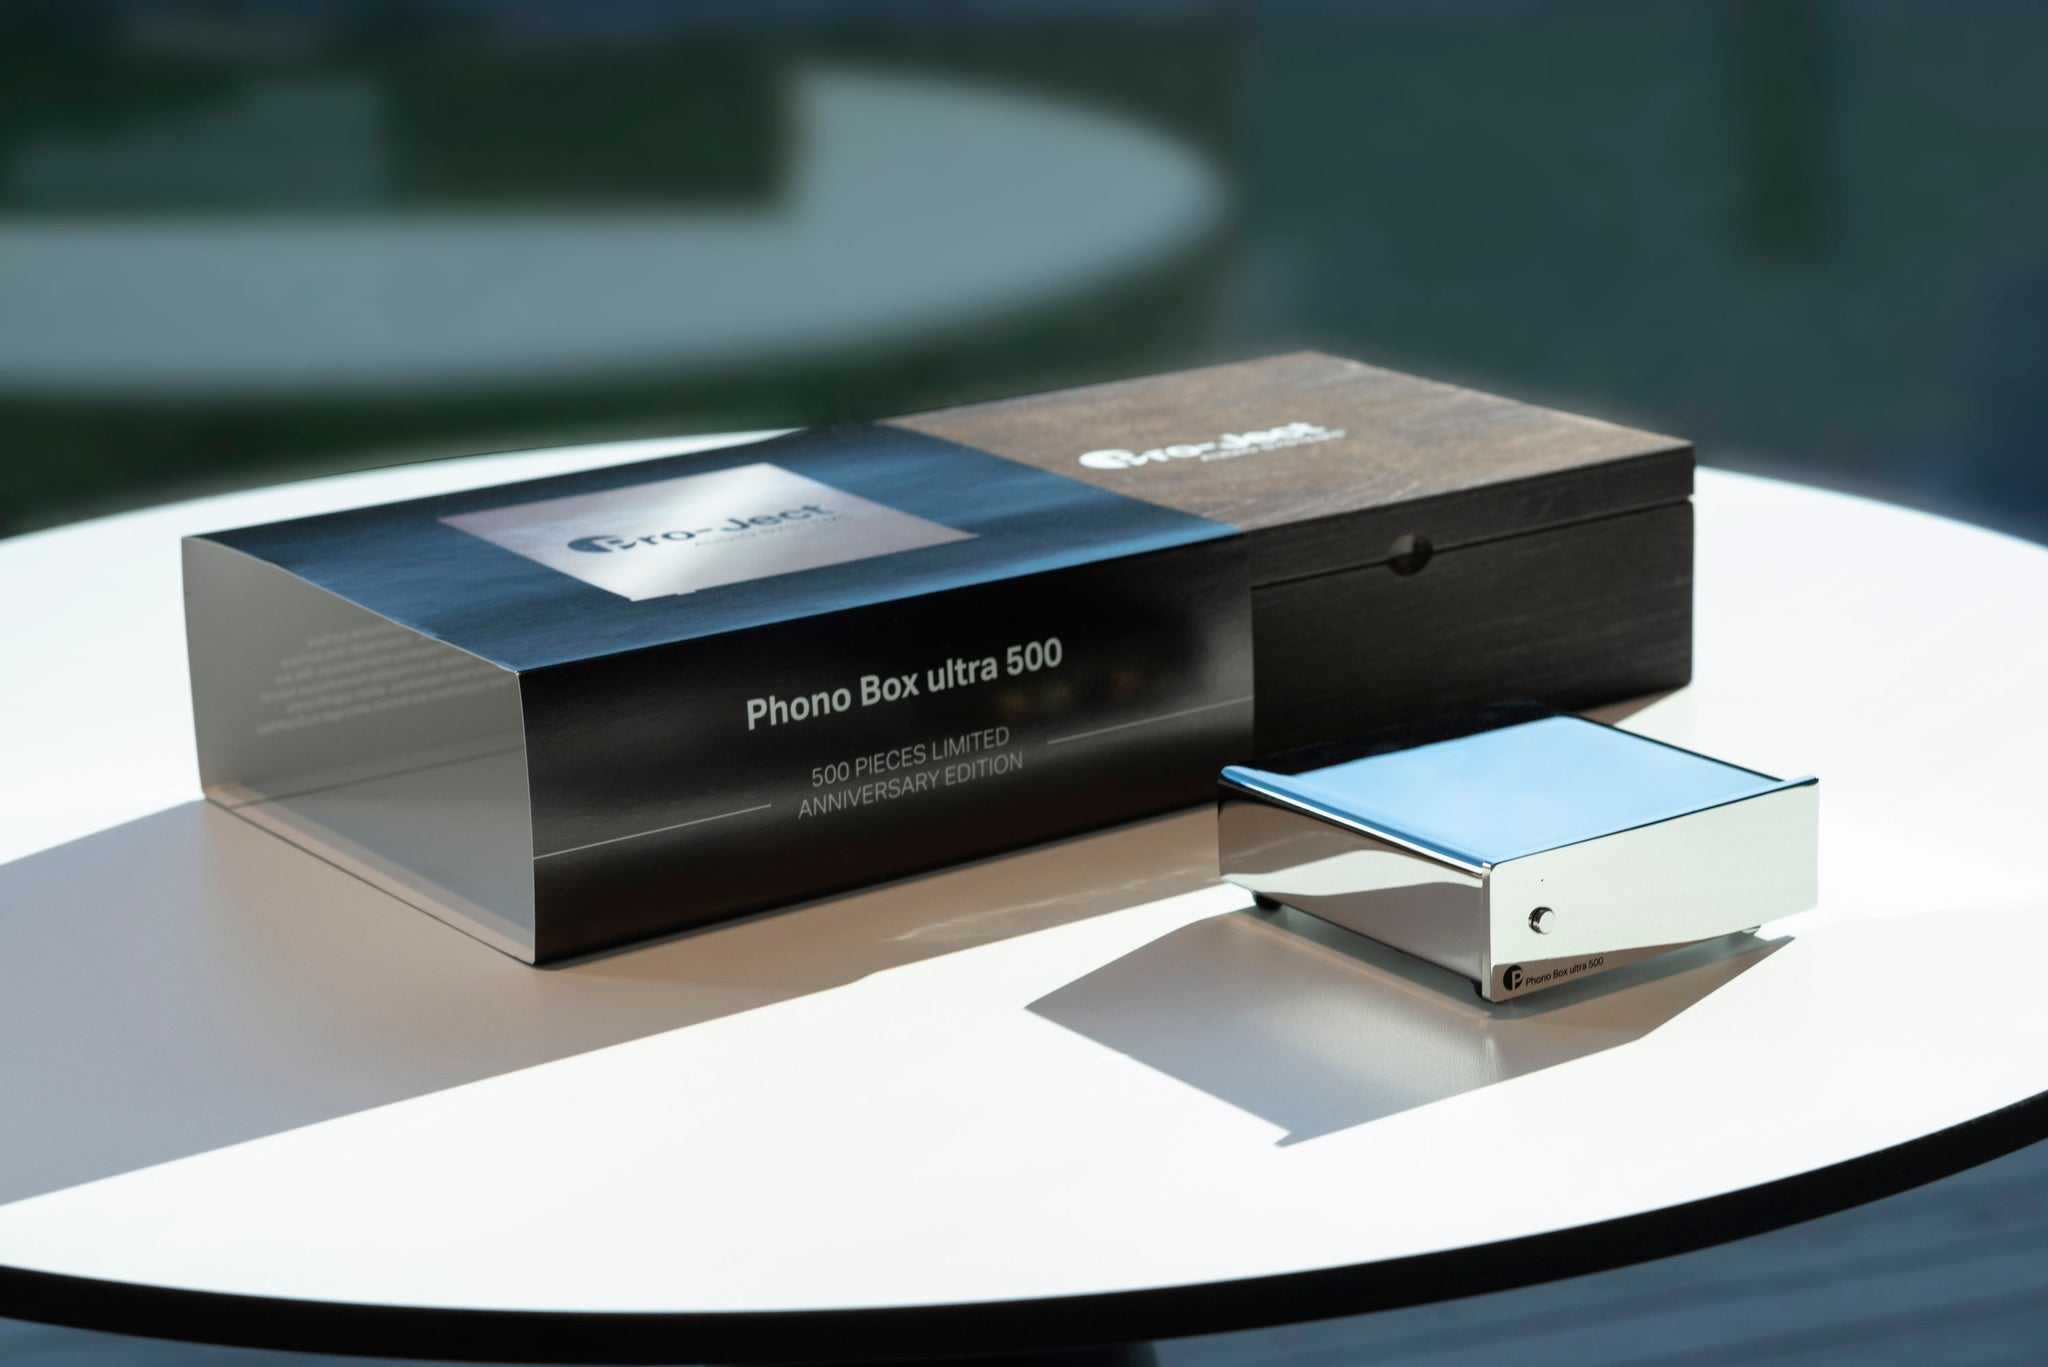 Phono Box Ultra 500